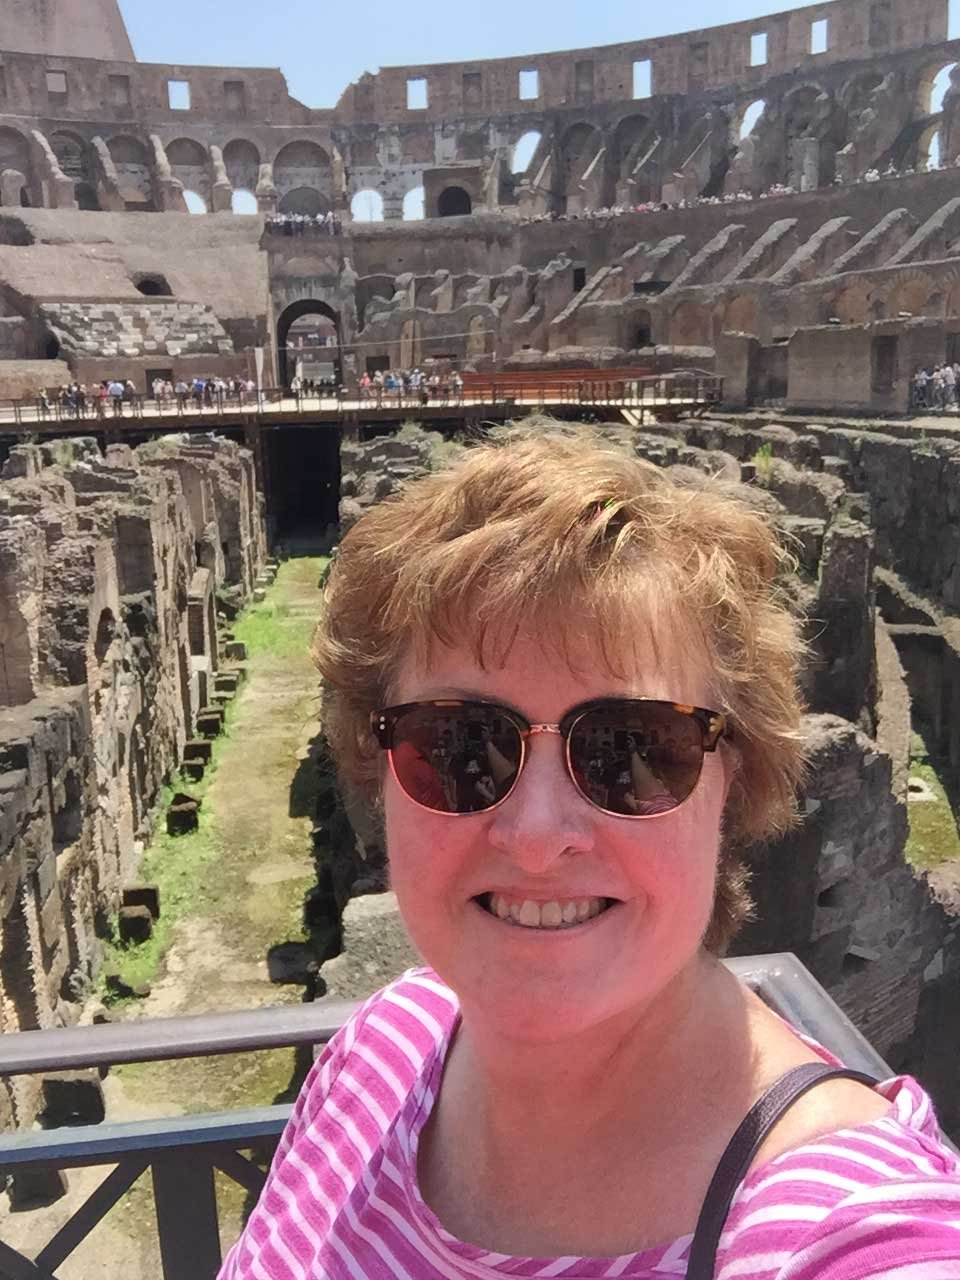 Don't bother with 'skip the line' tickets in Rome, as we found out the hard way at the Colosseum!  (Source: Rosanne Coloccia)